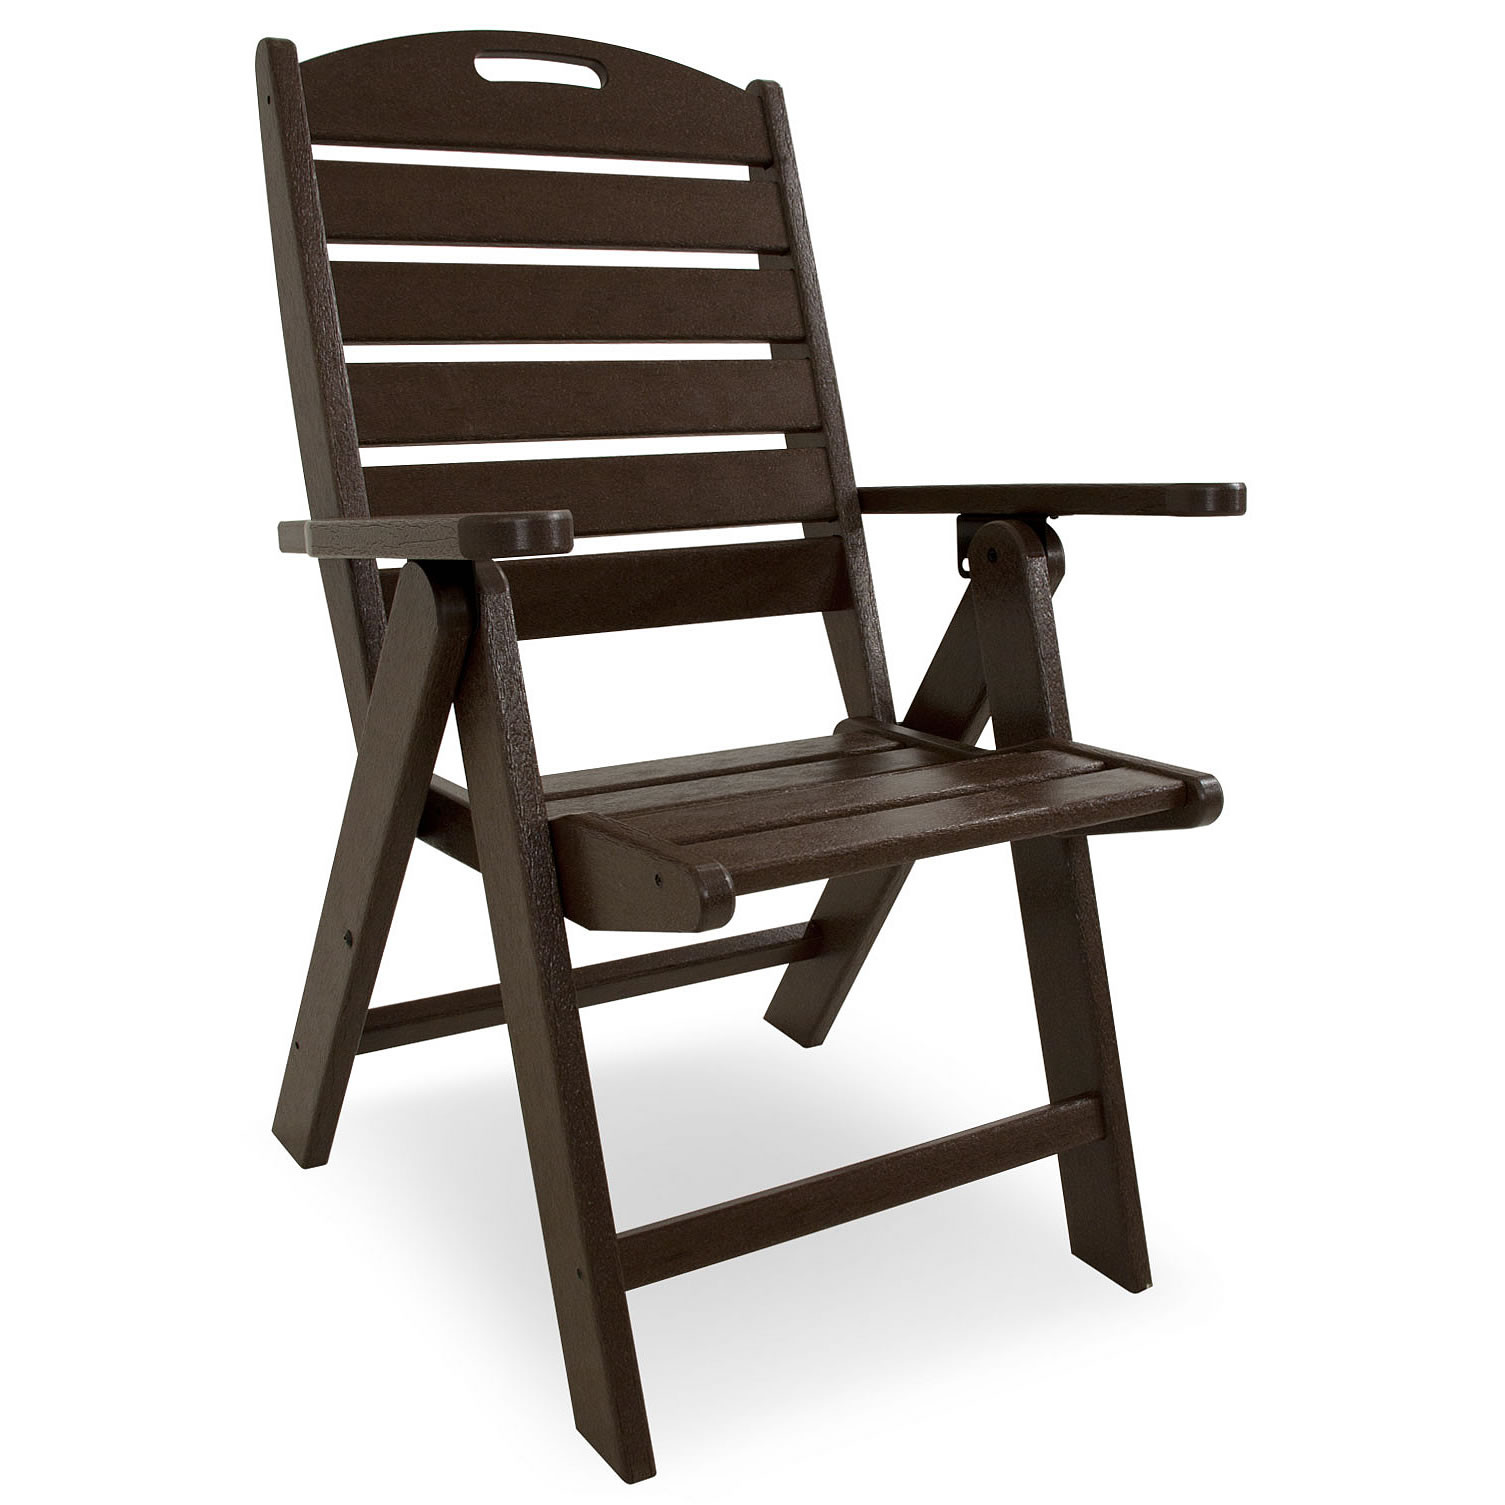 POLYWOOD Nautical Highback Chair Nautical Collection POLYWOOD Outdoor Fu